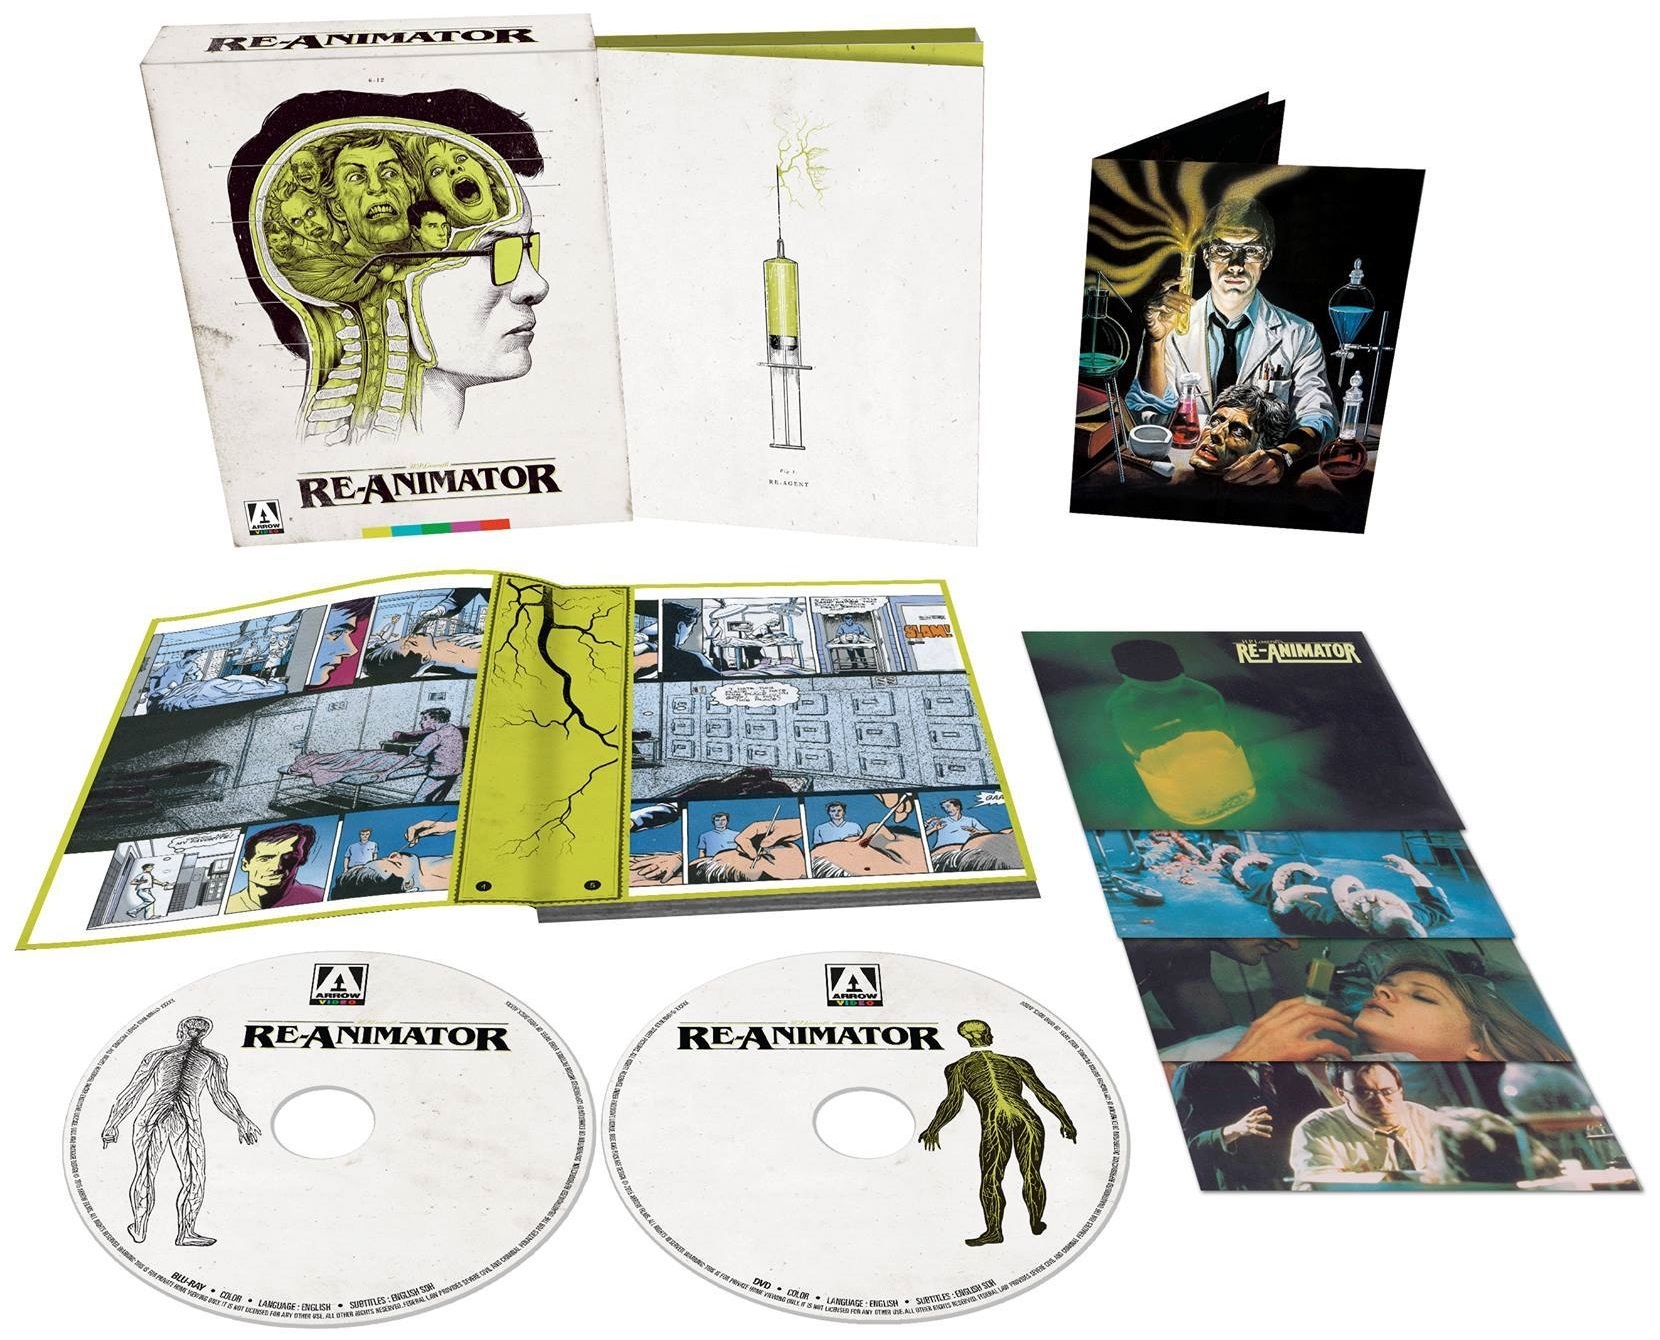 Re-Animator Arrow Video USA Blu-Ray Set